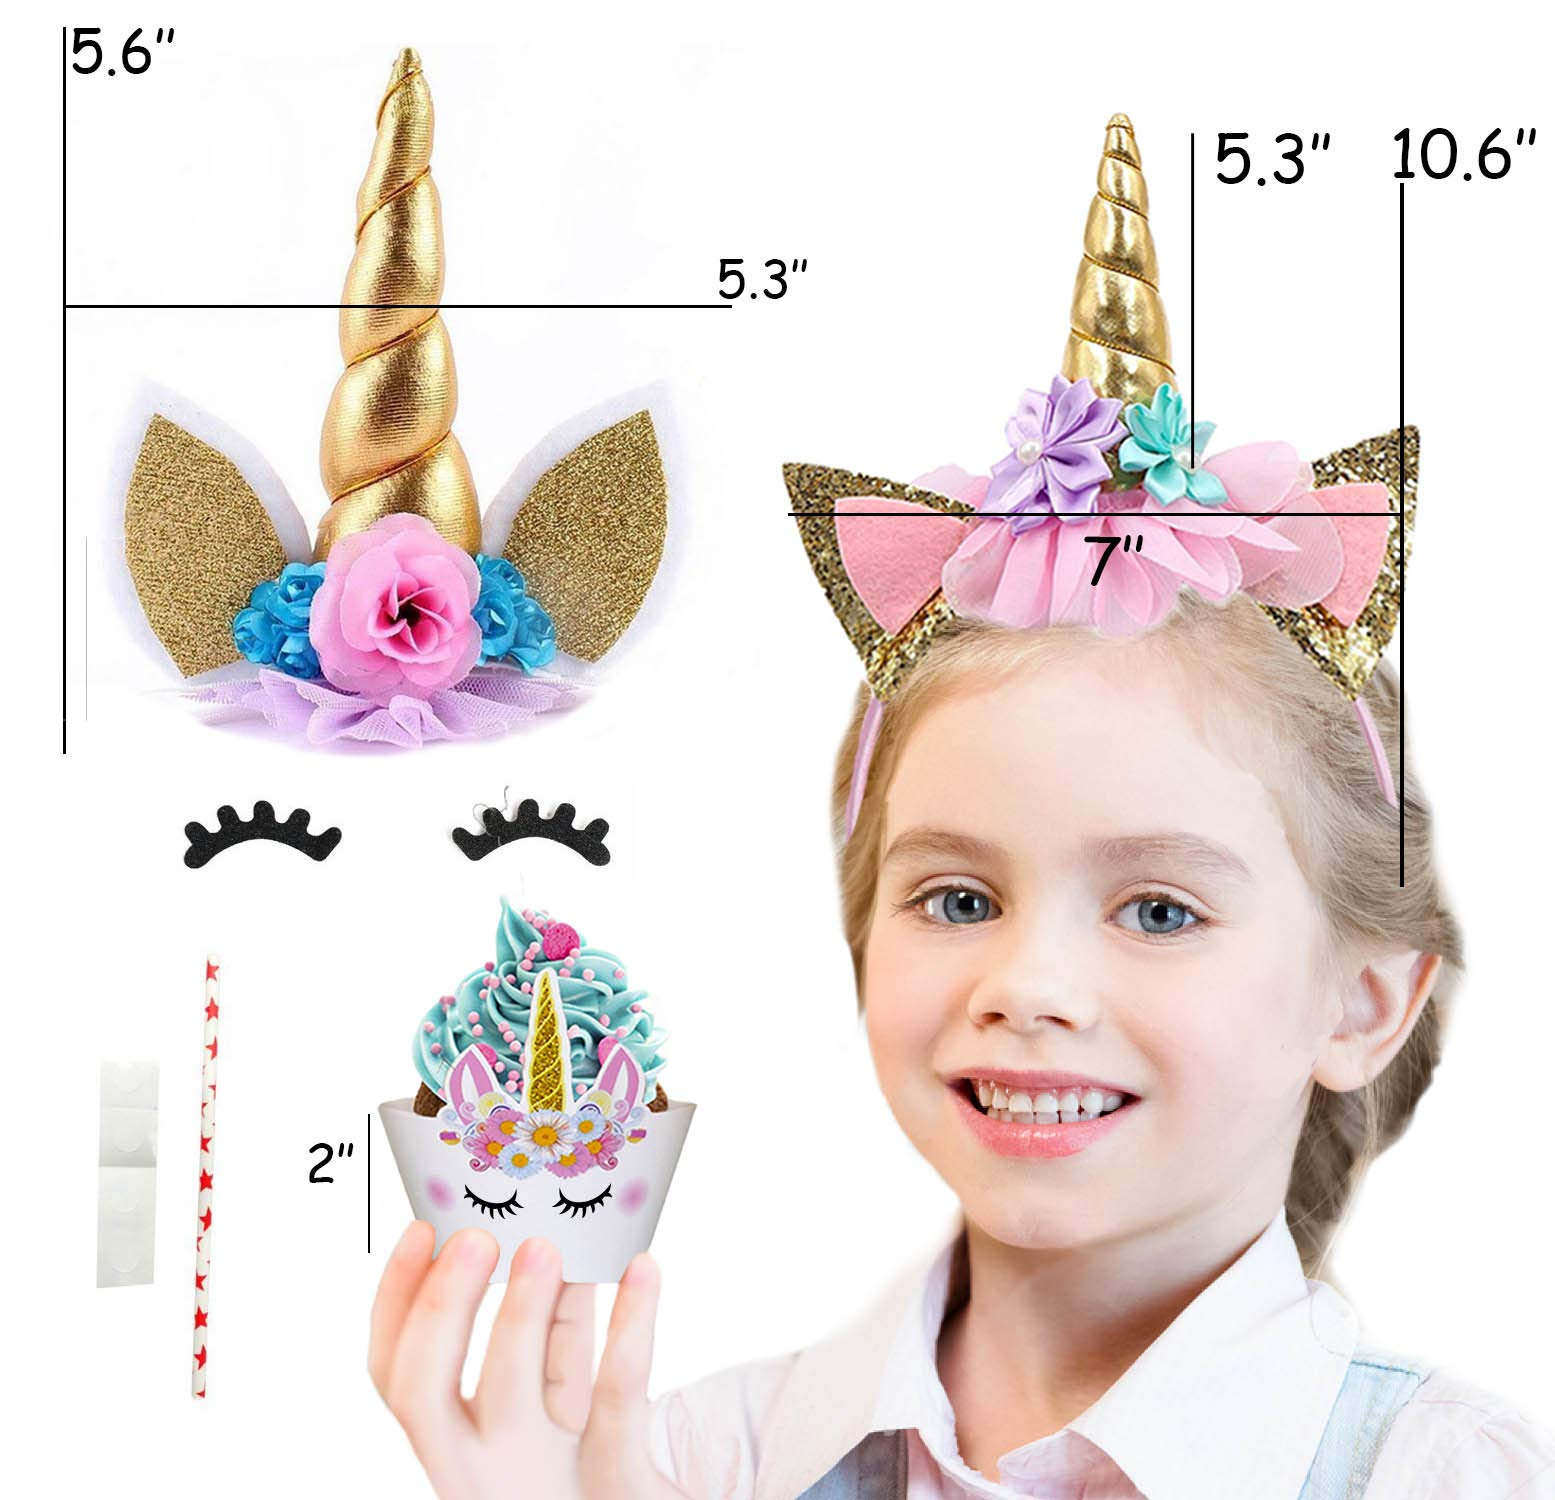 Bestus (29 pack) Unicorn Cake Topper with Eyelashes, Headband, Cupcake Wrappers and Happy Birthday Banner./Unicorn Party Supplies,for Birthday Party, Baby Shower, Kids Party Decoration 6